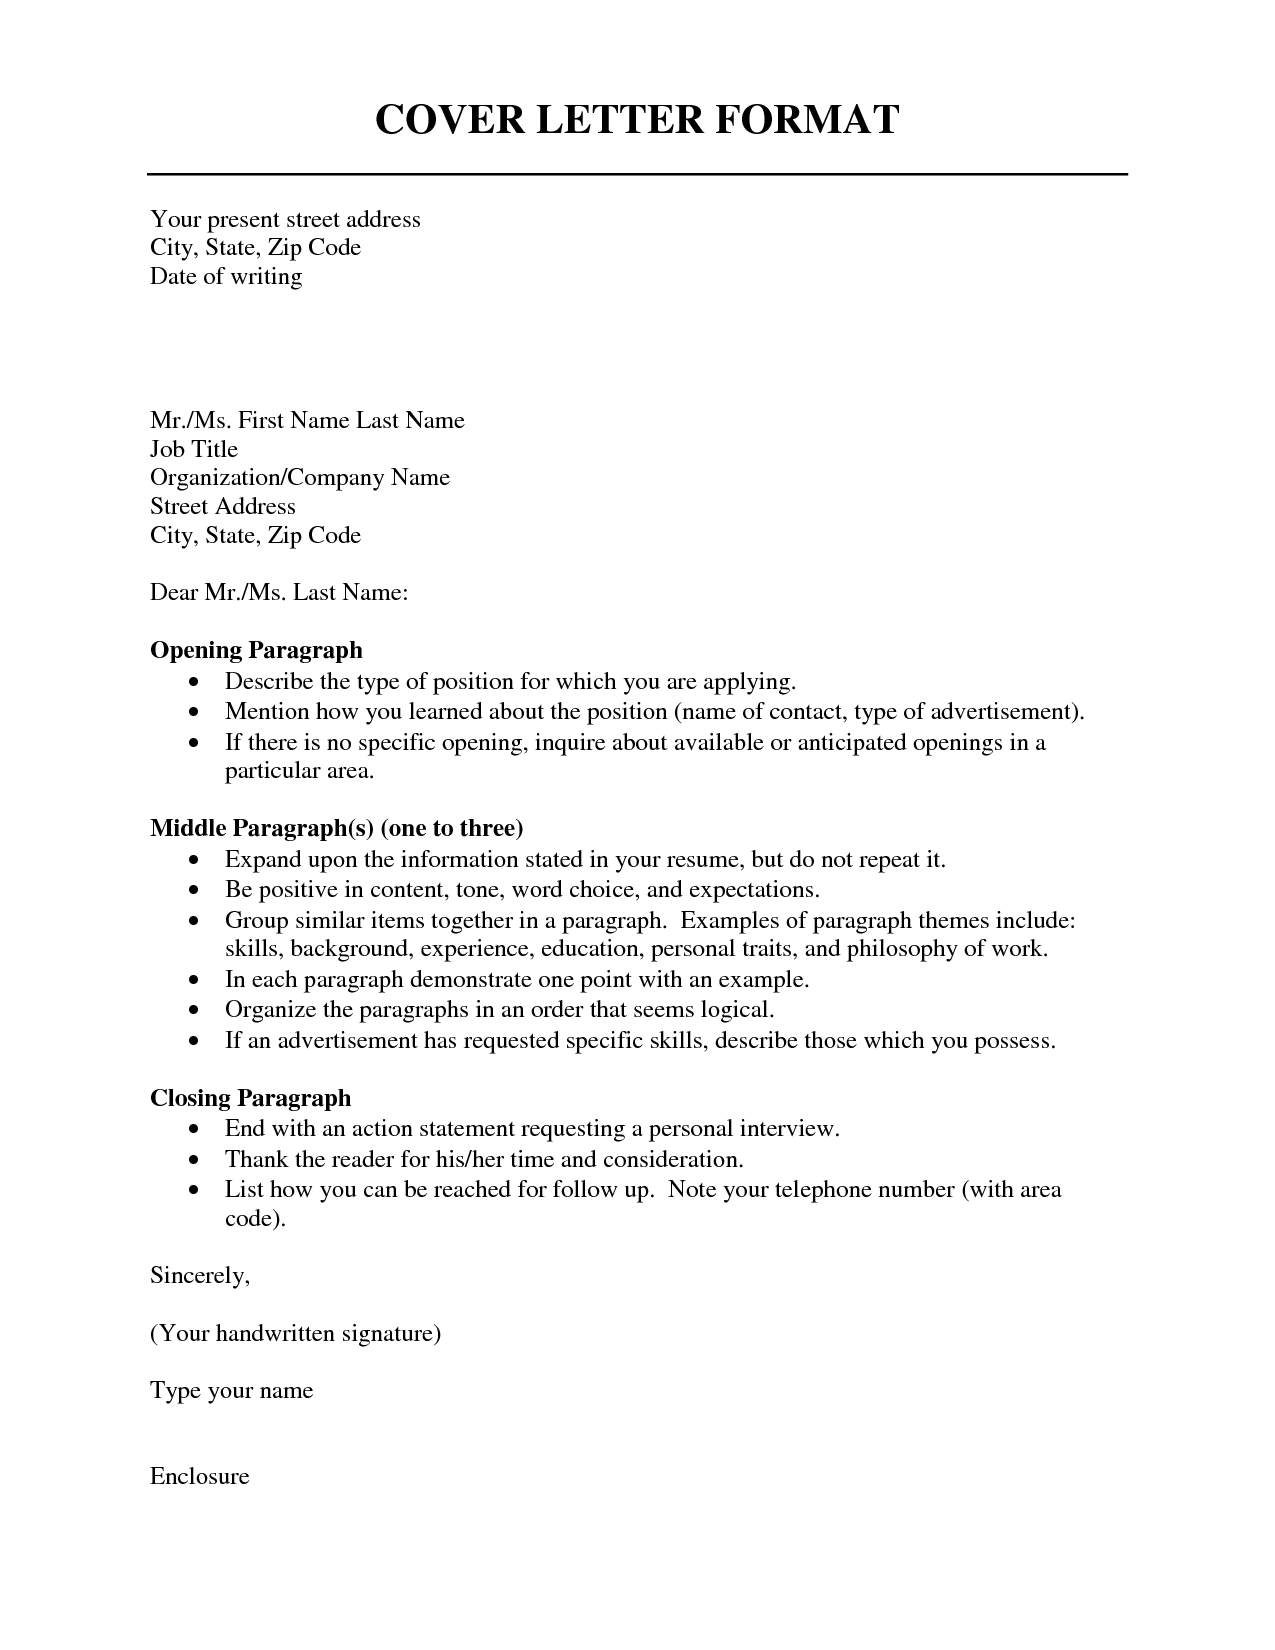 Incroyable Cover Letter Business Format